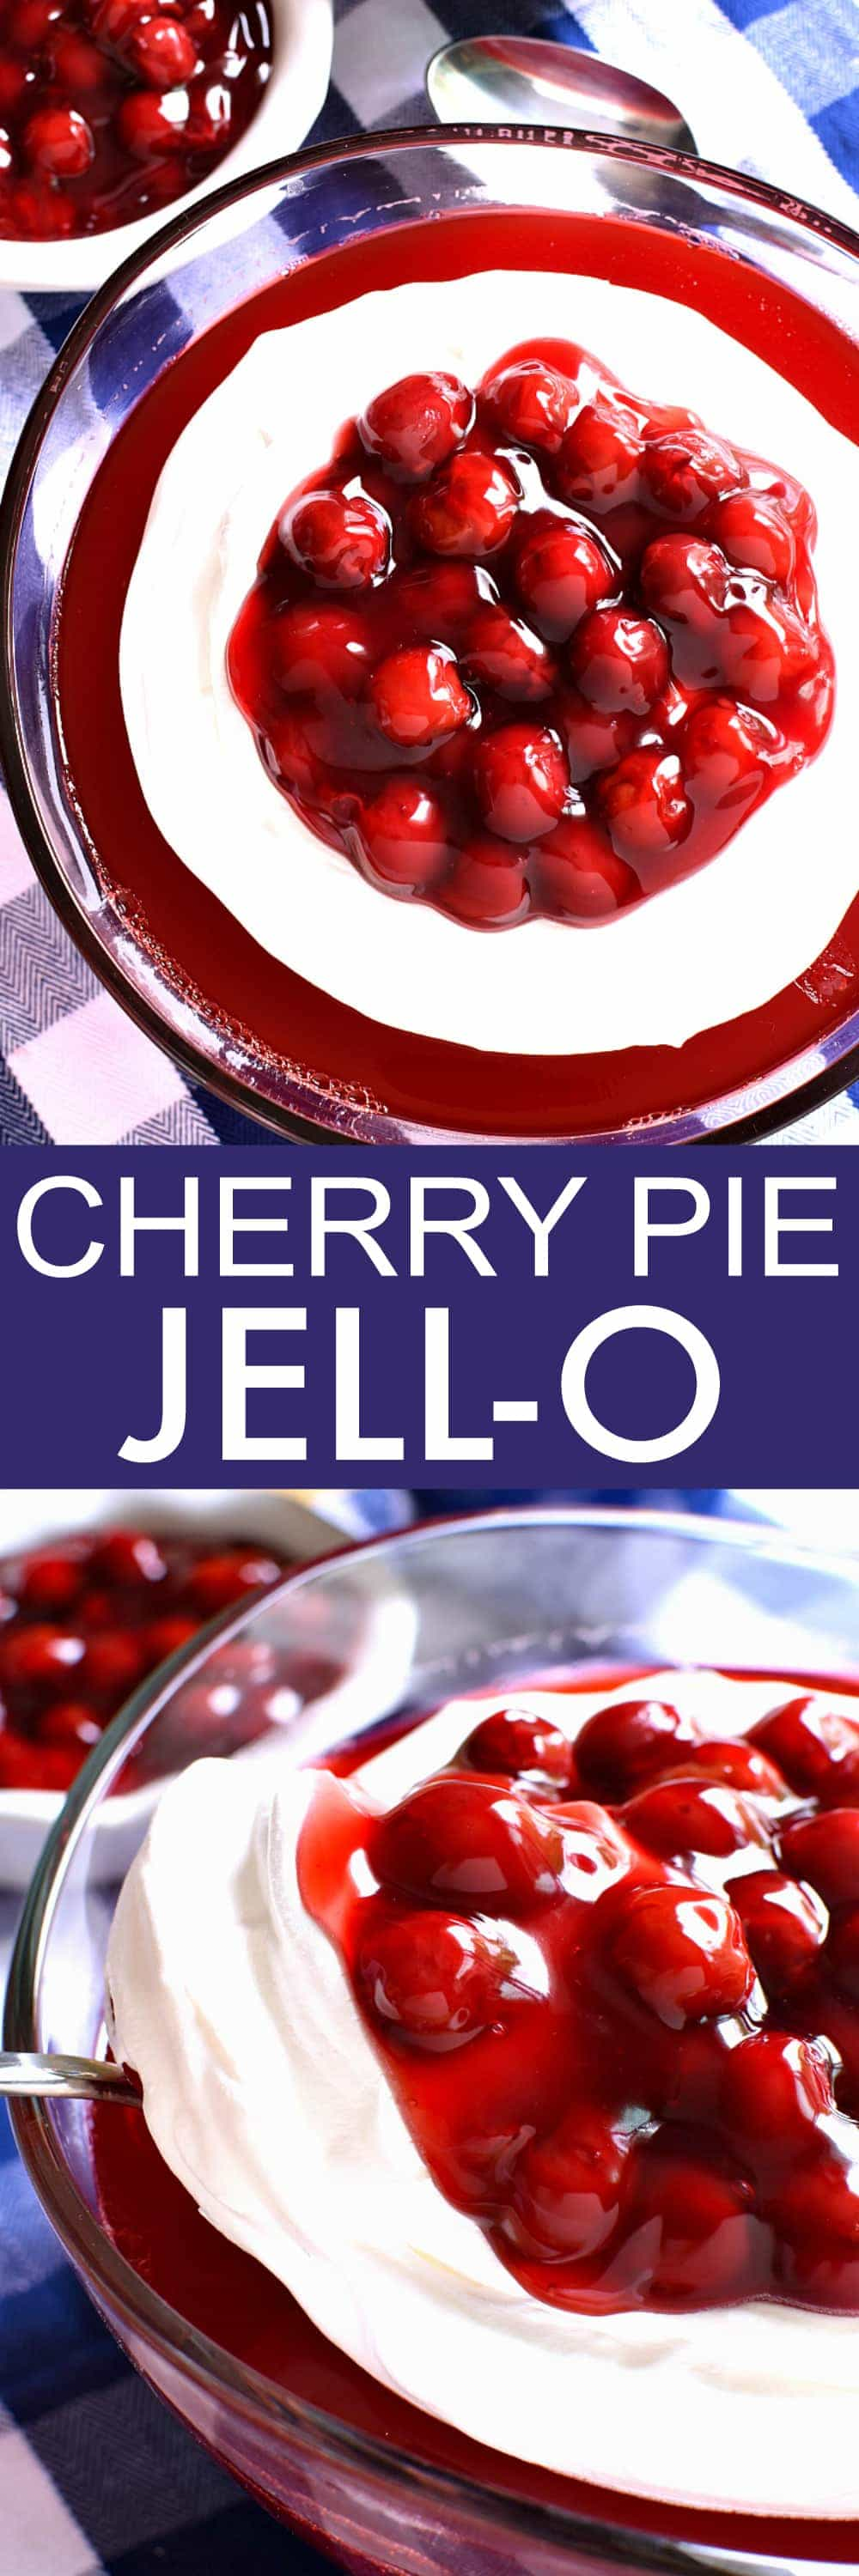 This Cherry Pie Jello is the perfect addition to any summer menu! It's simple to make, with just 3 easy ingredients, and always a huge hit with adults and kid alike!